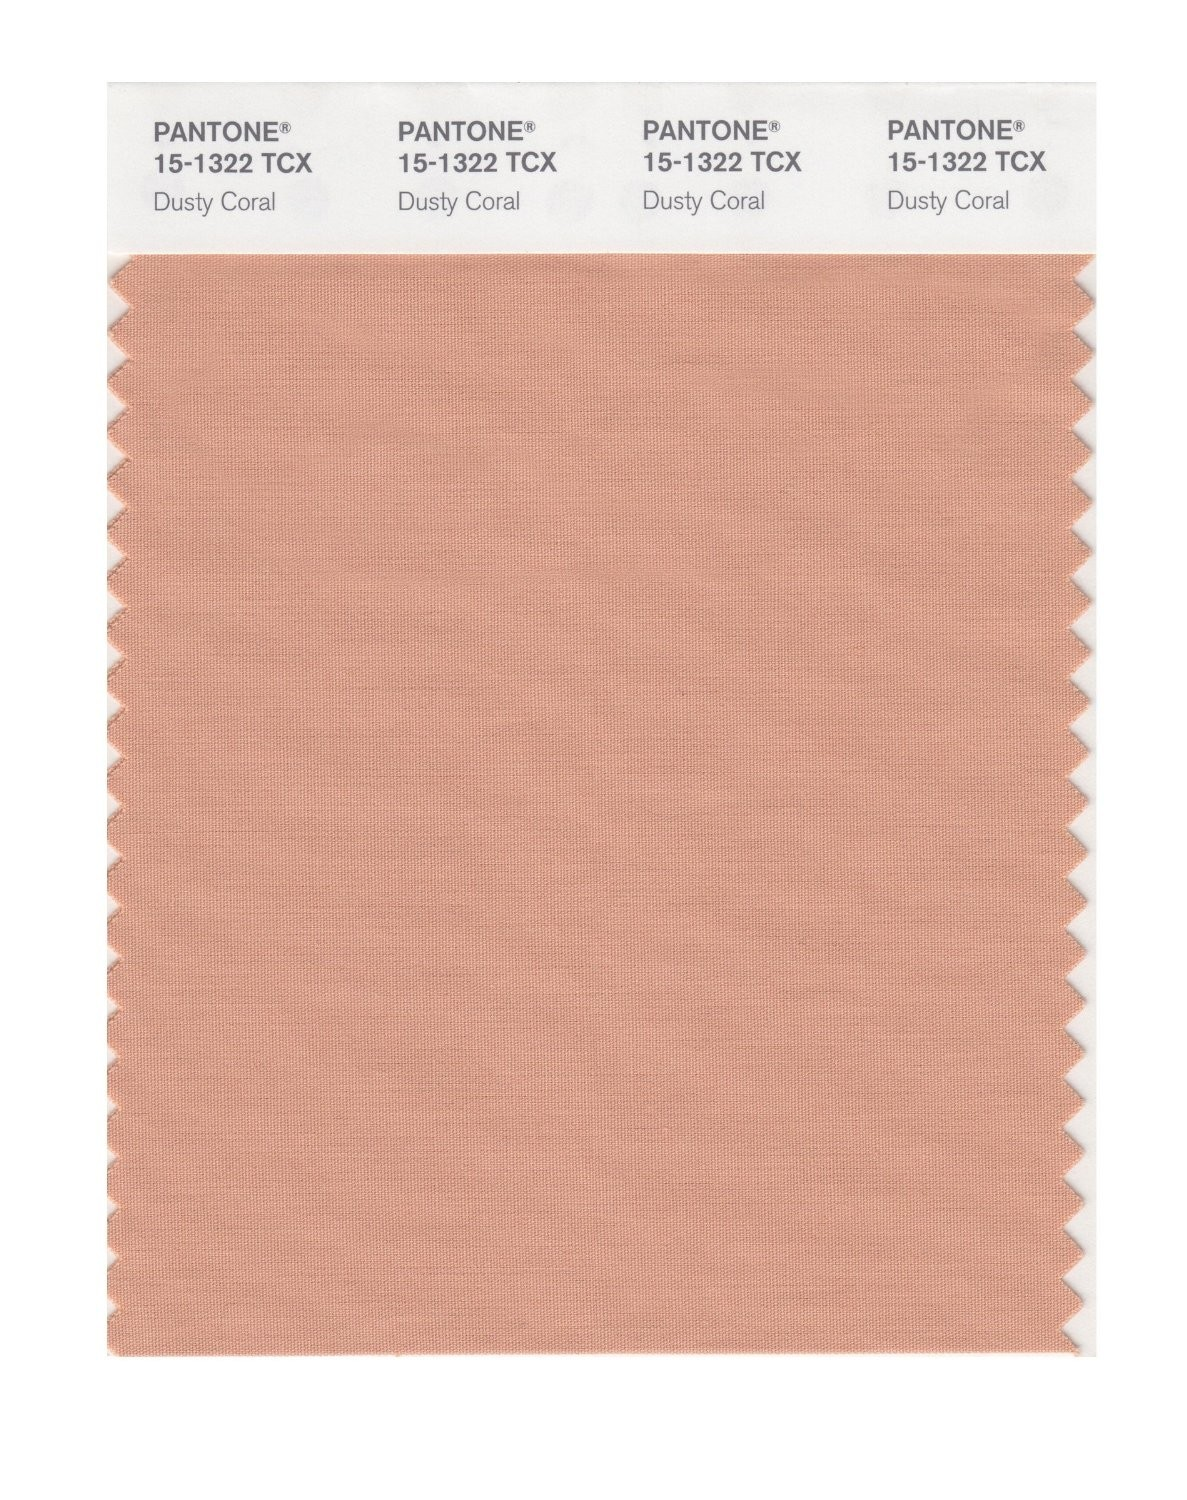 Pantone 15-1322 TCX Swatch Card Dusty Coral